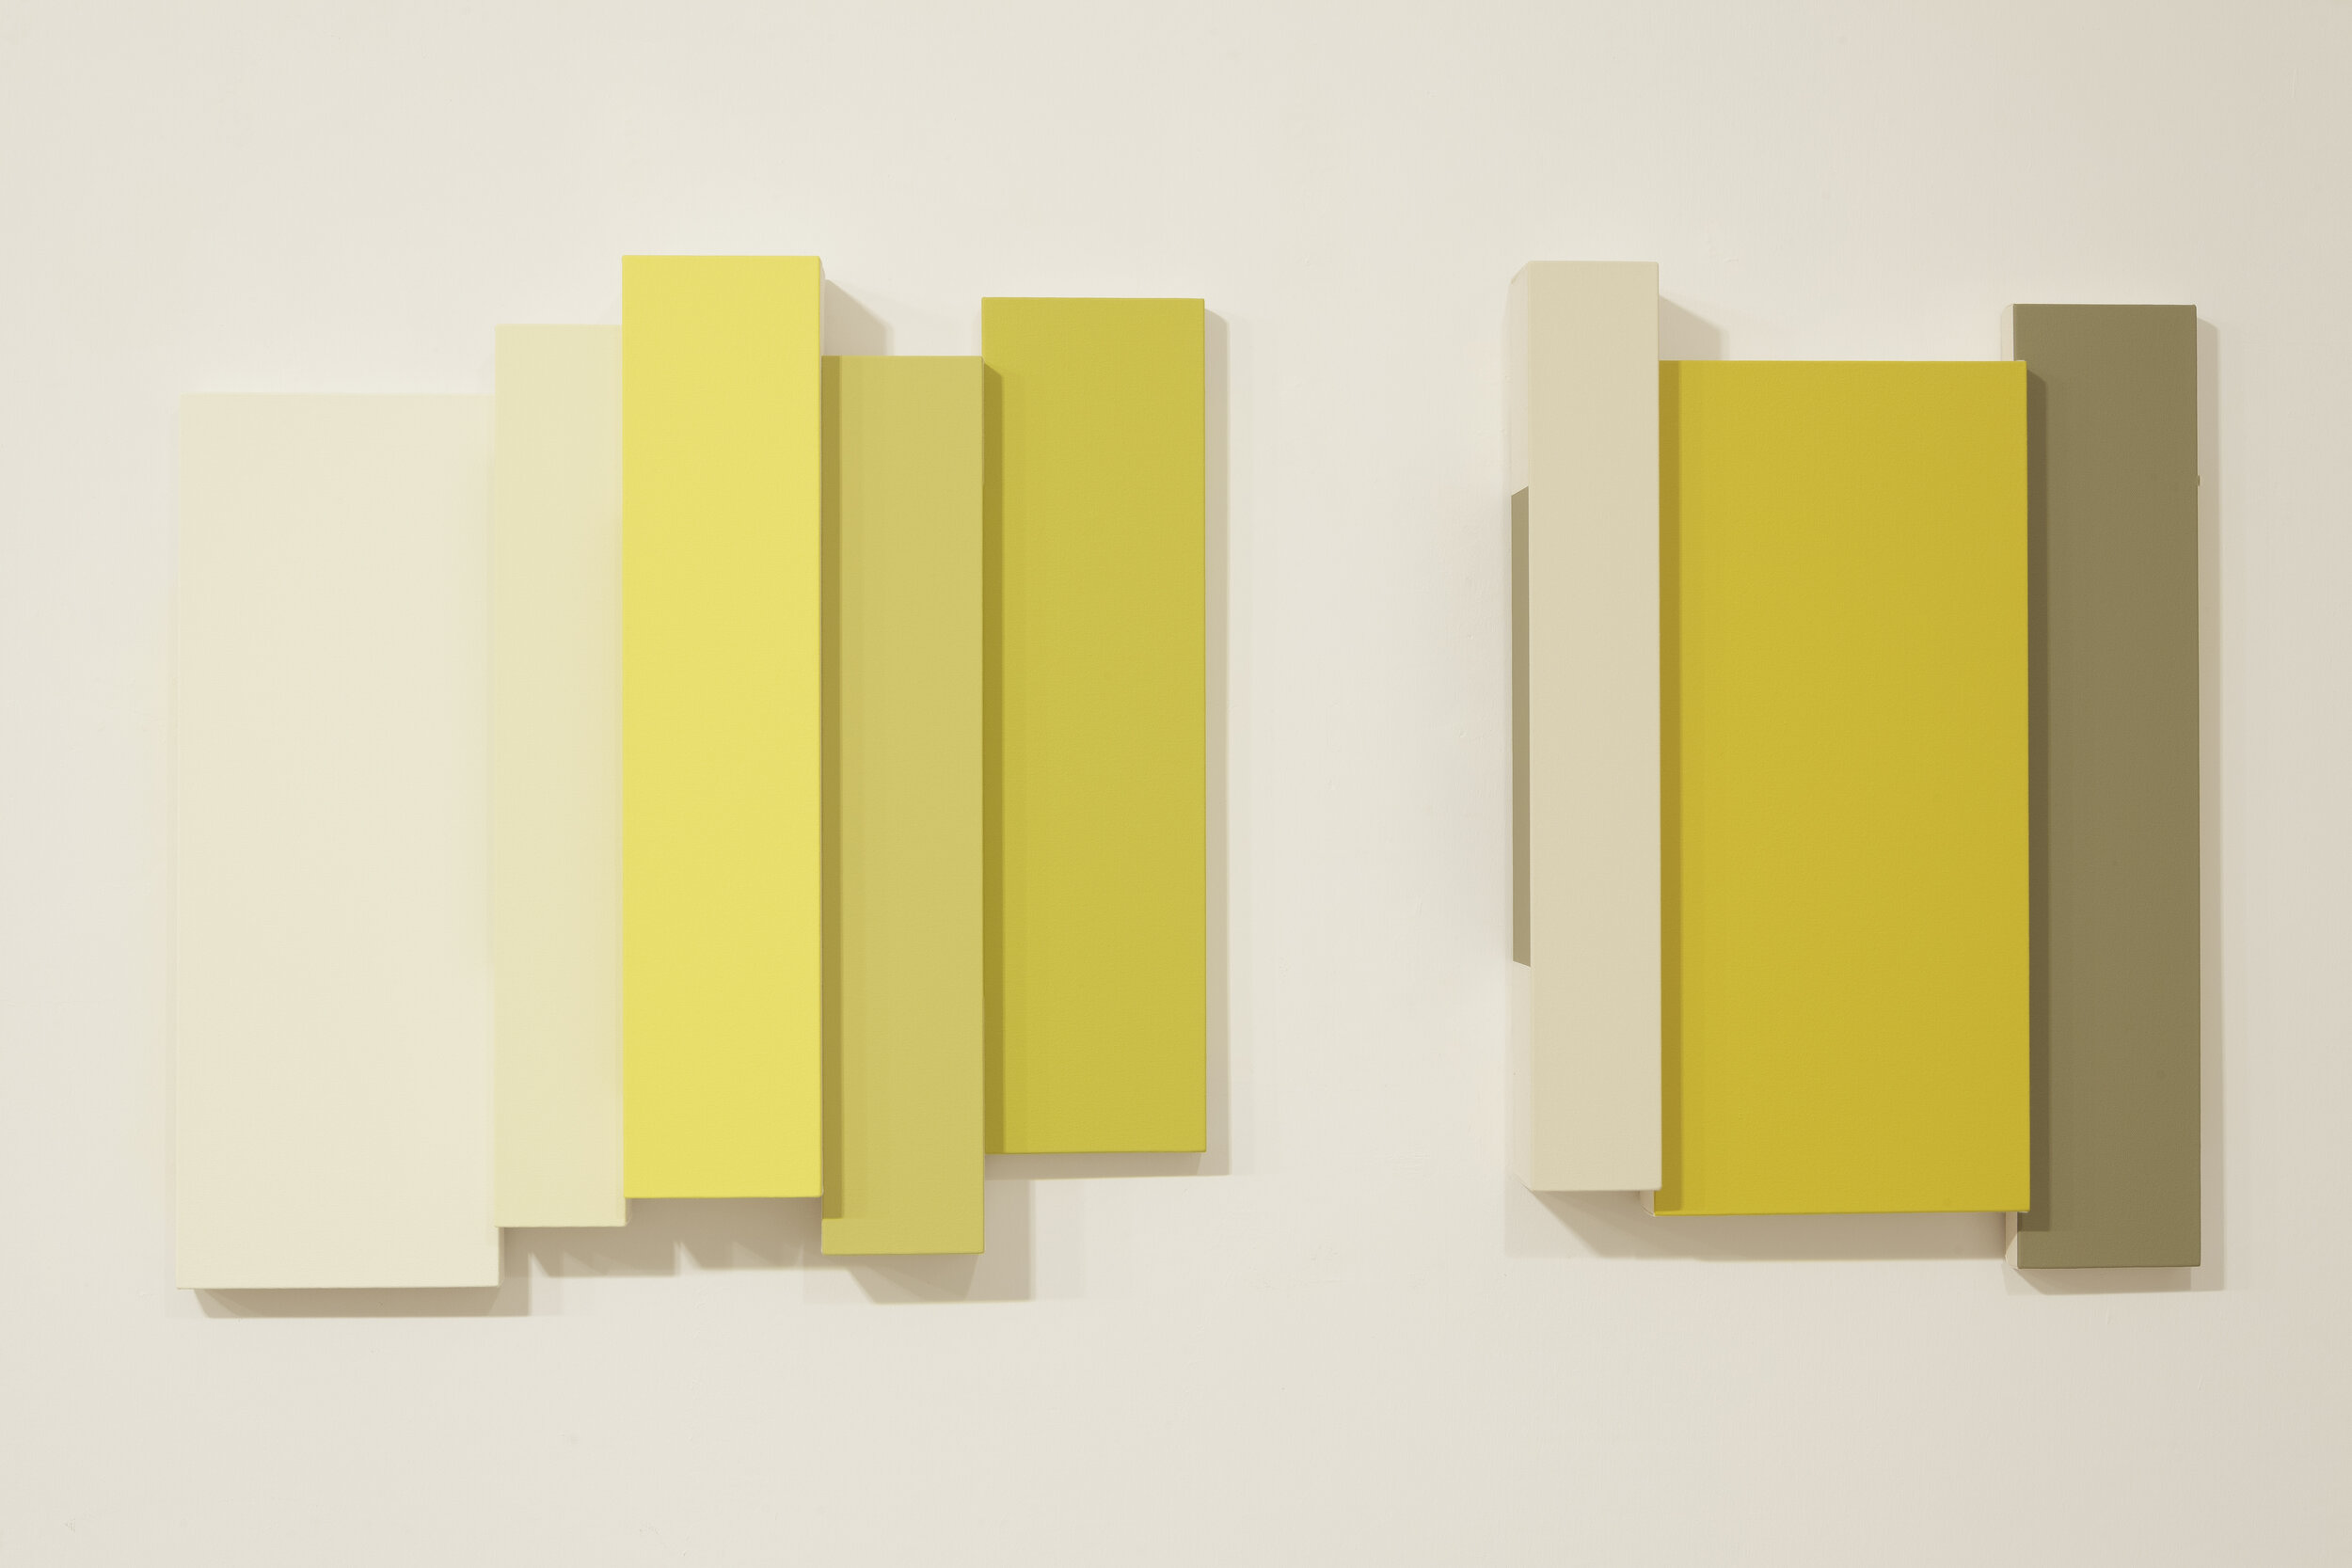 Winona (552) , 2012  acrylic on canvas 24 x 48 inches; 61 x 121.9 centimeters